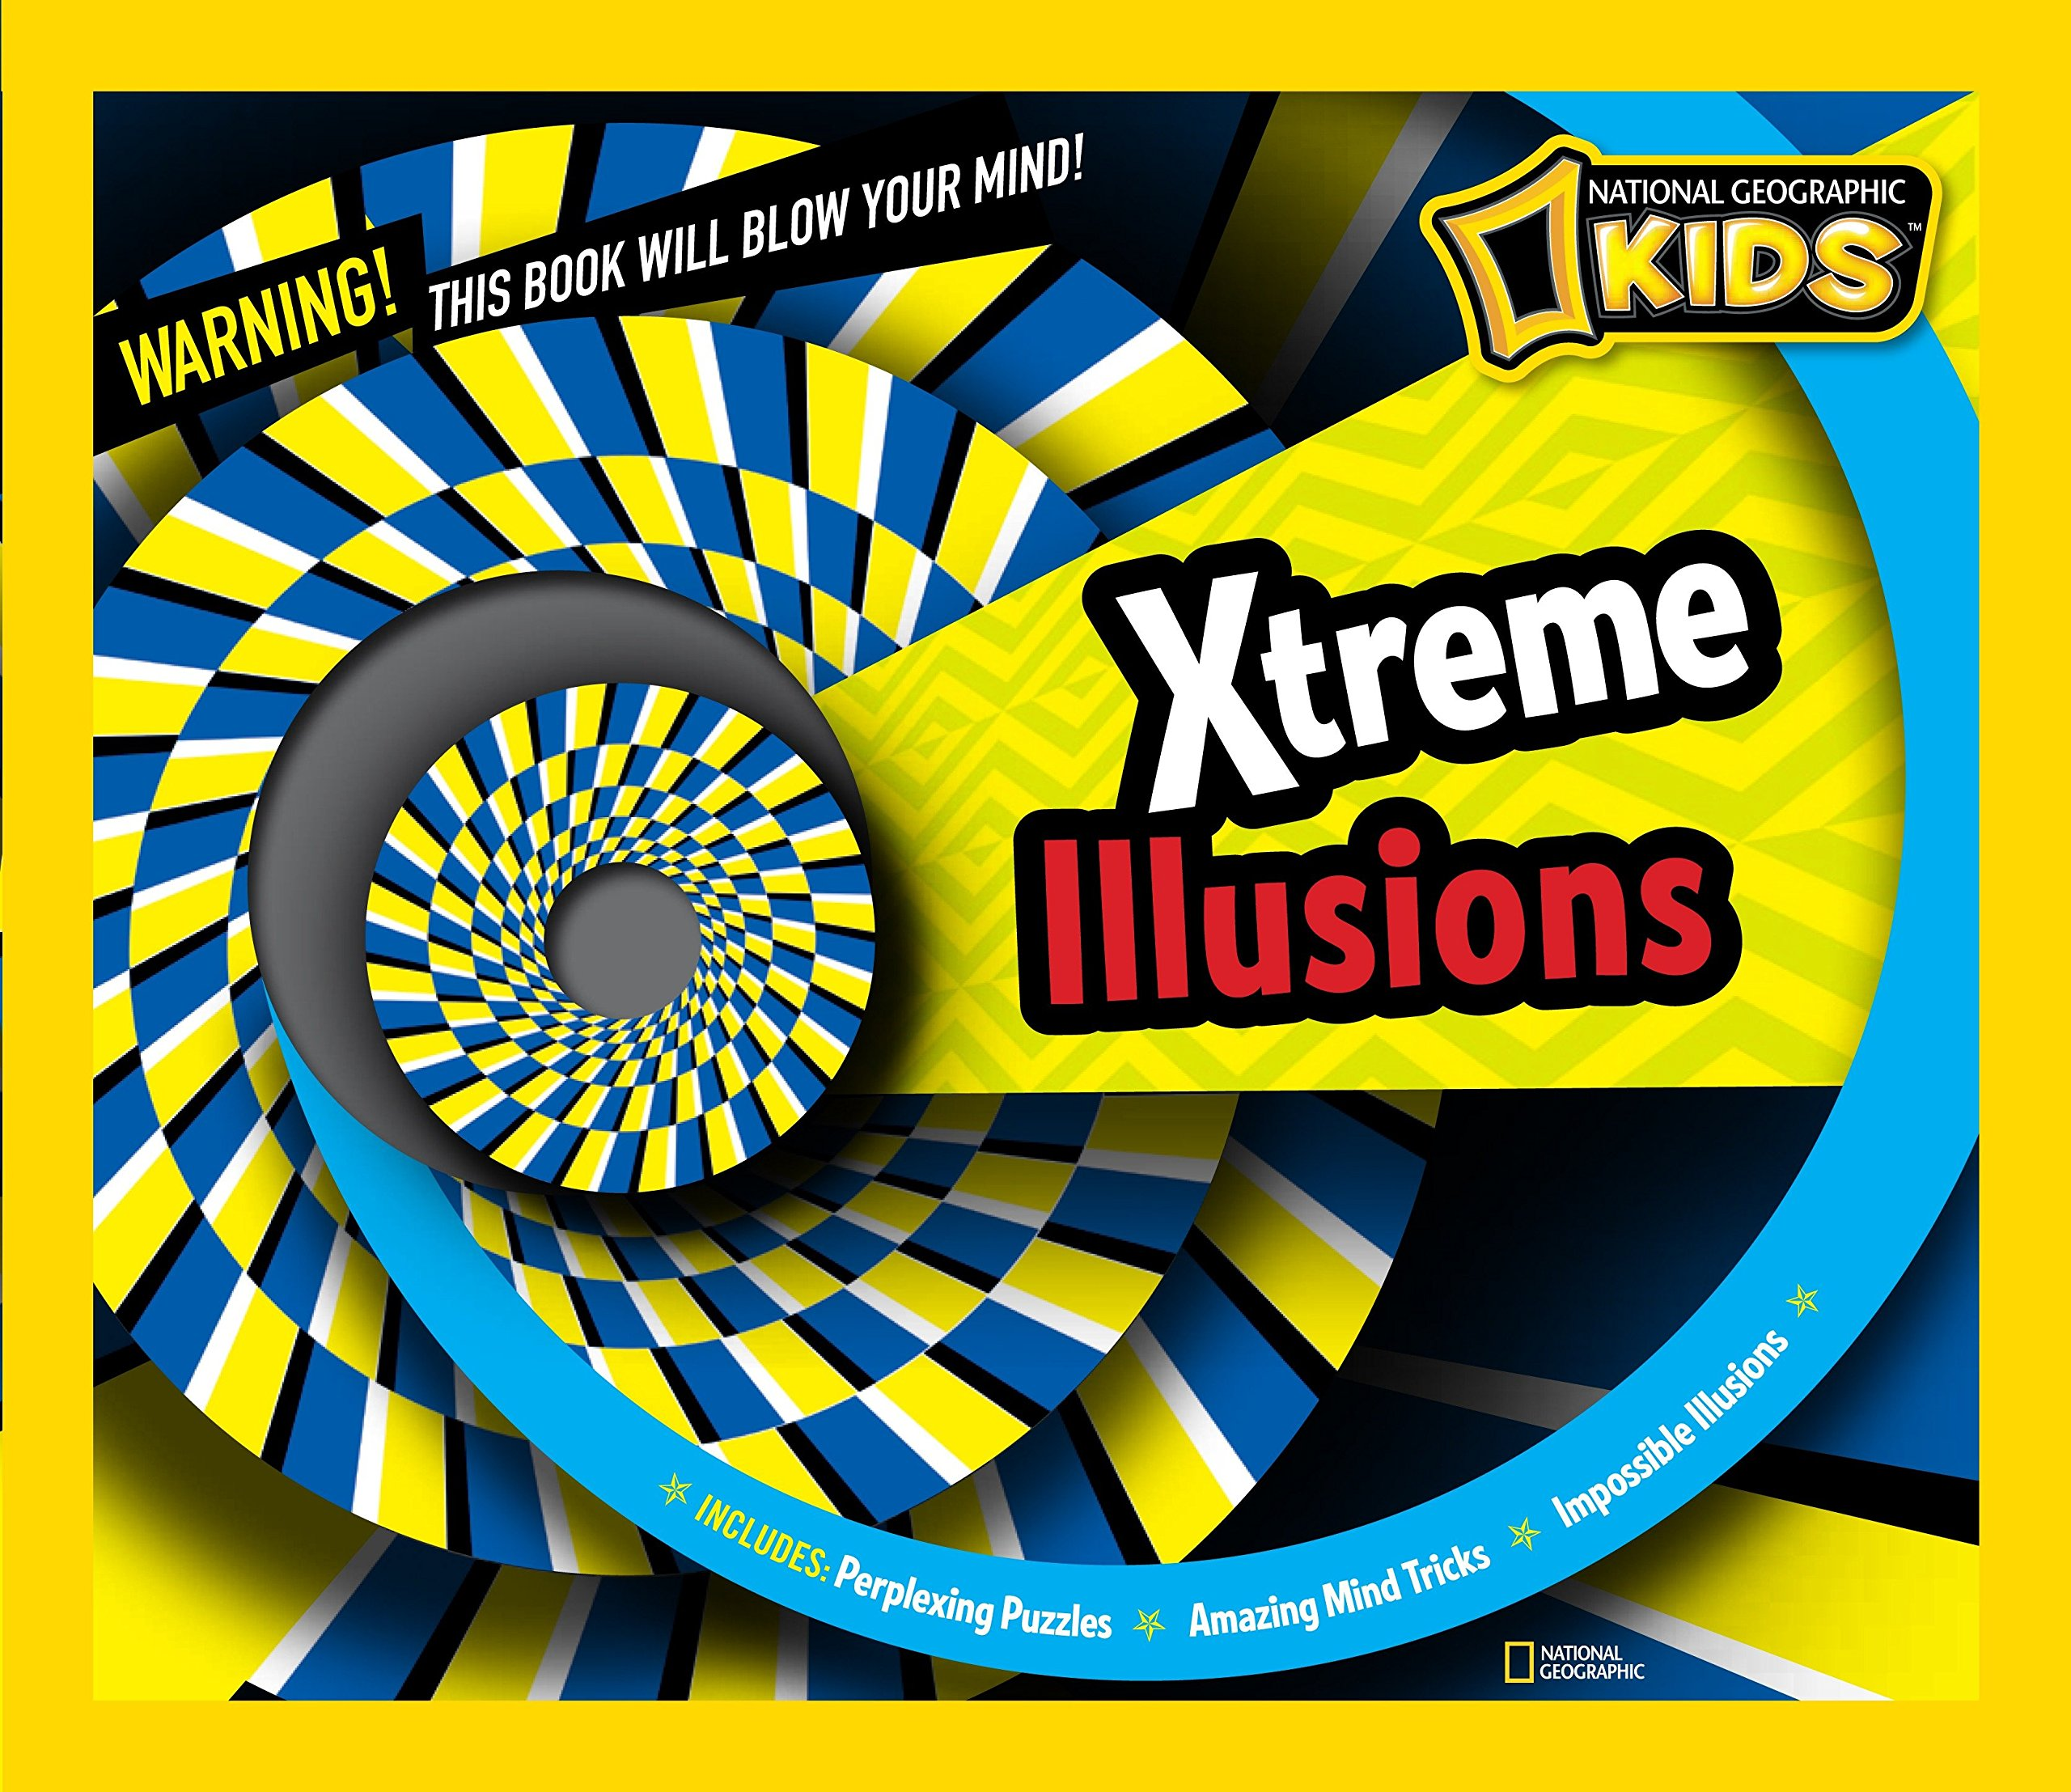 Xtreme Illusions: Perplexing Puzzles, Amazing Mind Tricks, Impossible Illusions (National Geographic Kids)